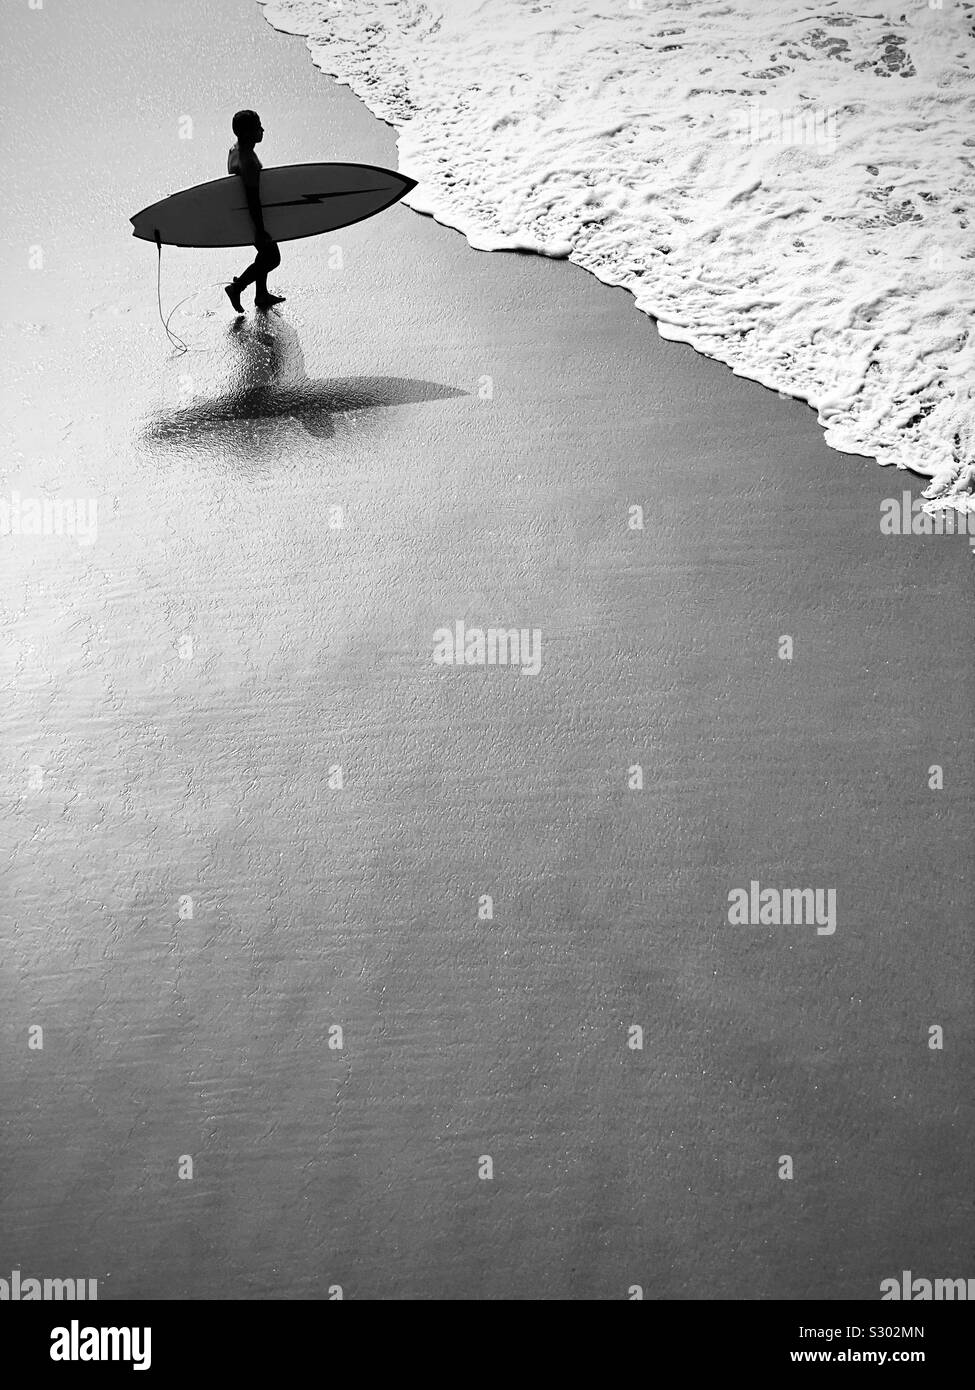 Surfer mâle entre dans le surf. Manhattan Beach, Californie, USA. Banque D'Images